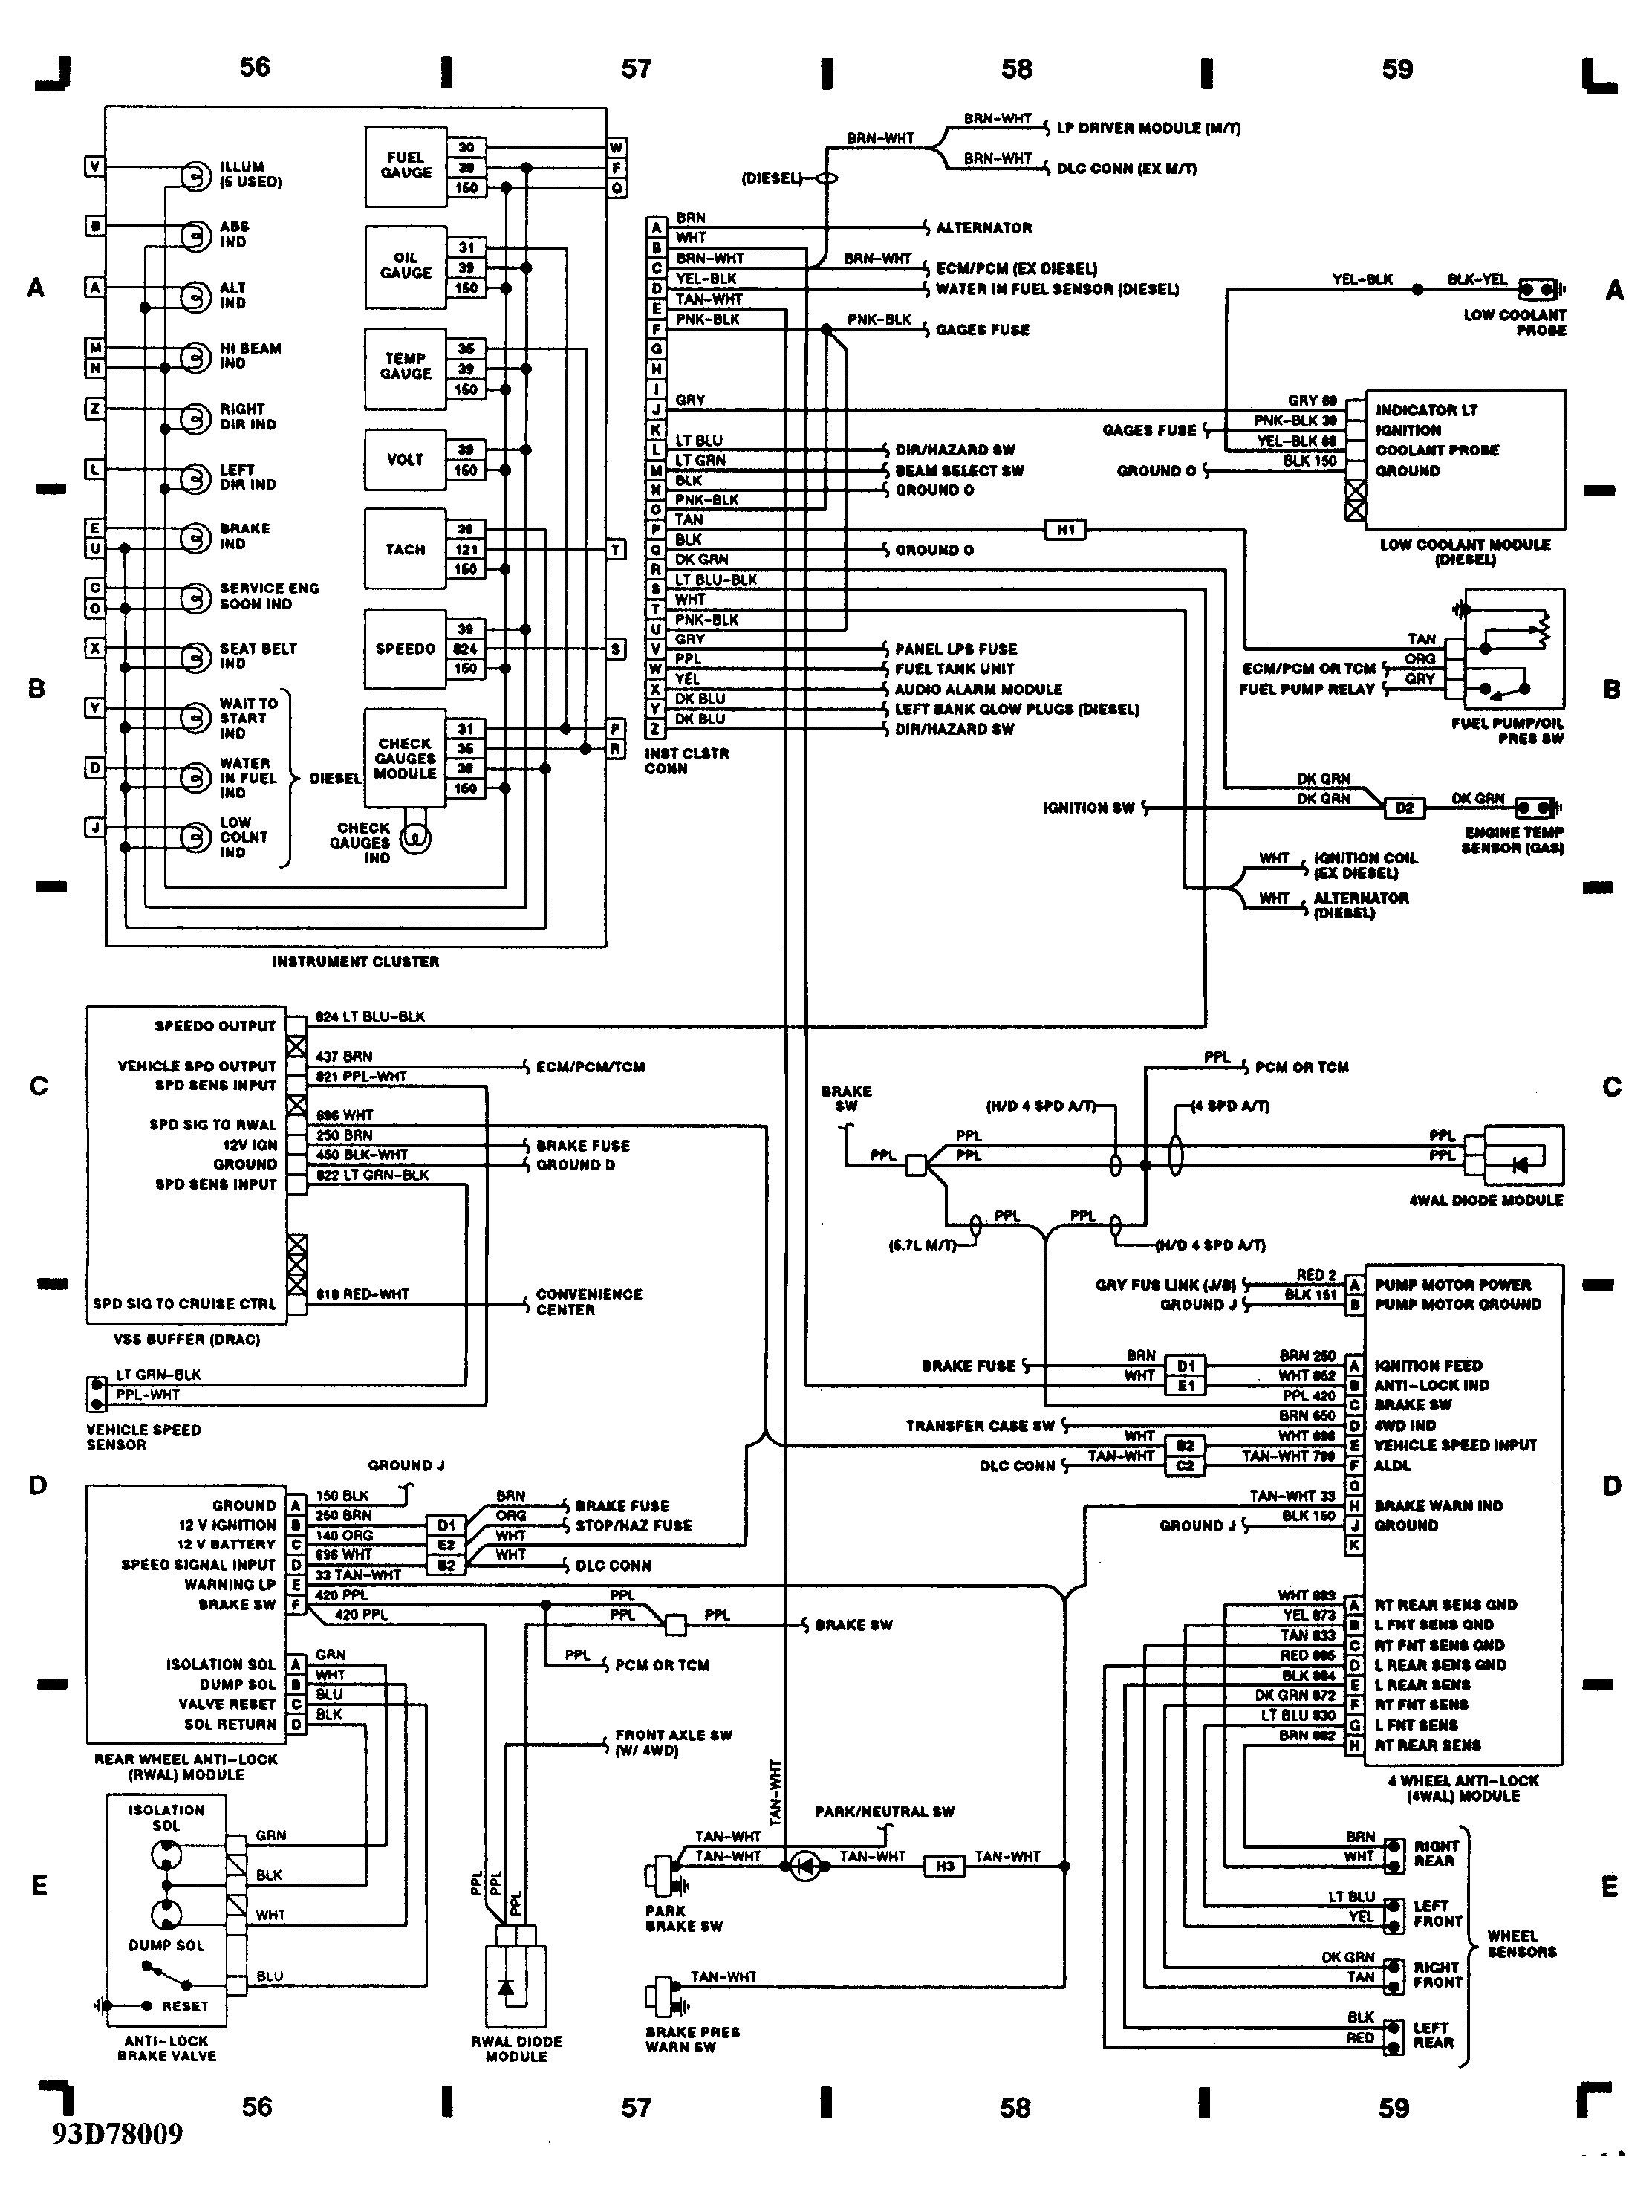 mercruiser 5 0 mpi diagram 16 18 ms krankenfahrten de \u2022 Mercruiser Tachometer Wiring Diagram 454 mercruiser engine wiring diagram 3 9 asyaunited de u2022 rh 3 9 asyaunited de mercruiser trim pump wiring diagram mercruiser trim pump wiring diagram